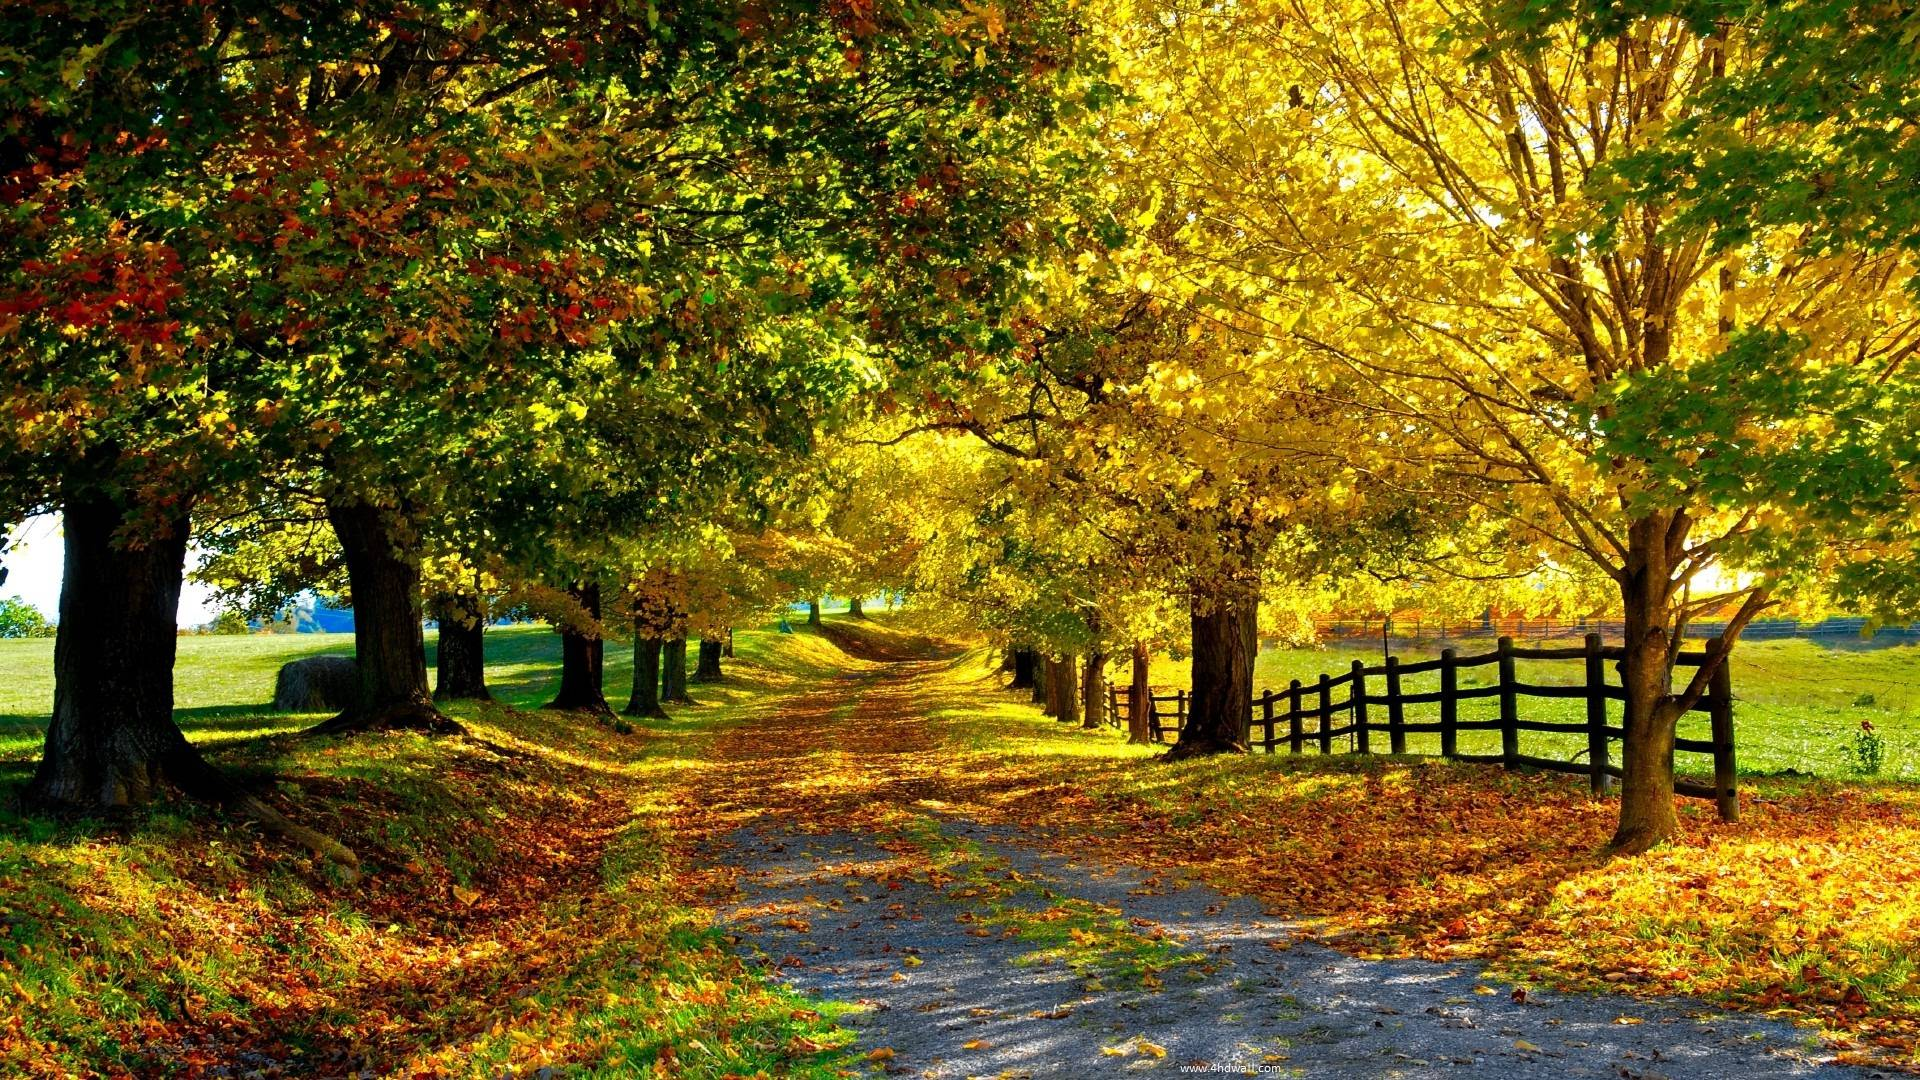 Fall season wallpapers wallpaper cave free seasons wallpapers and backgrounds wallpapers idol m4hsunfo Image collections